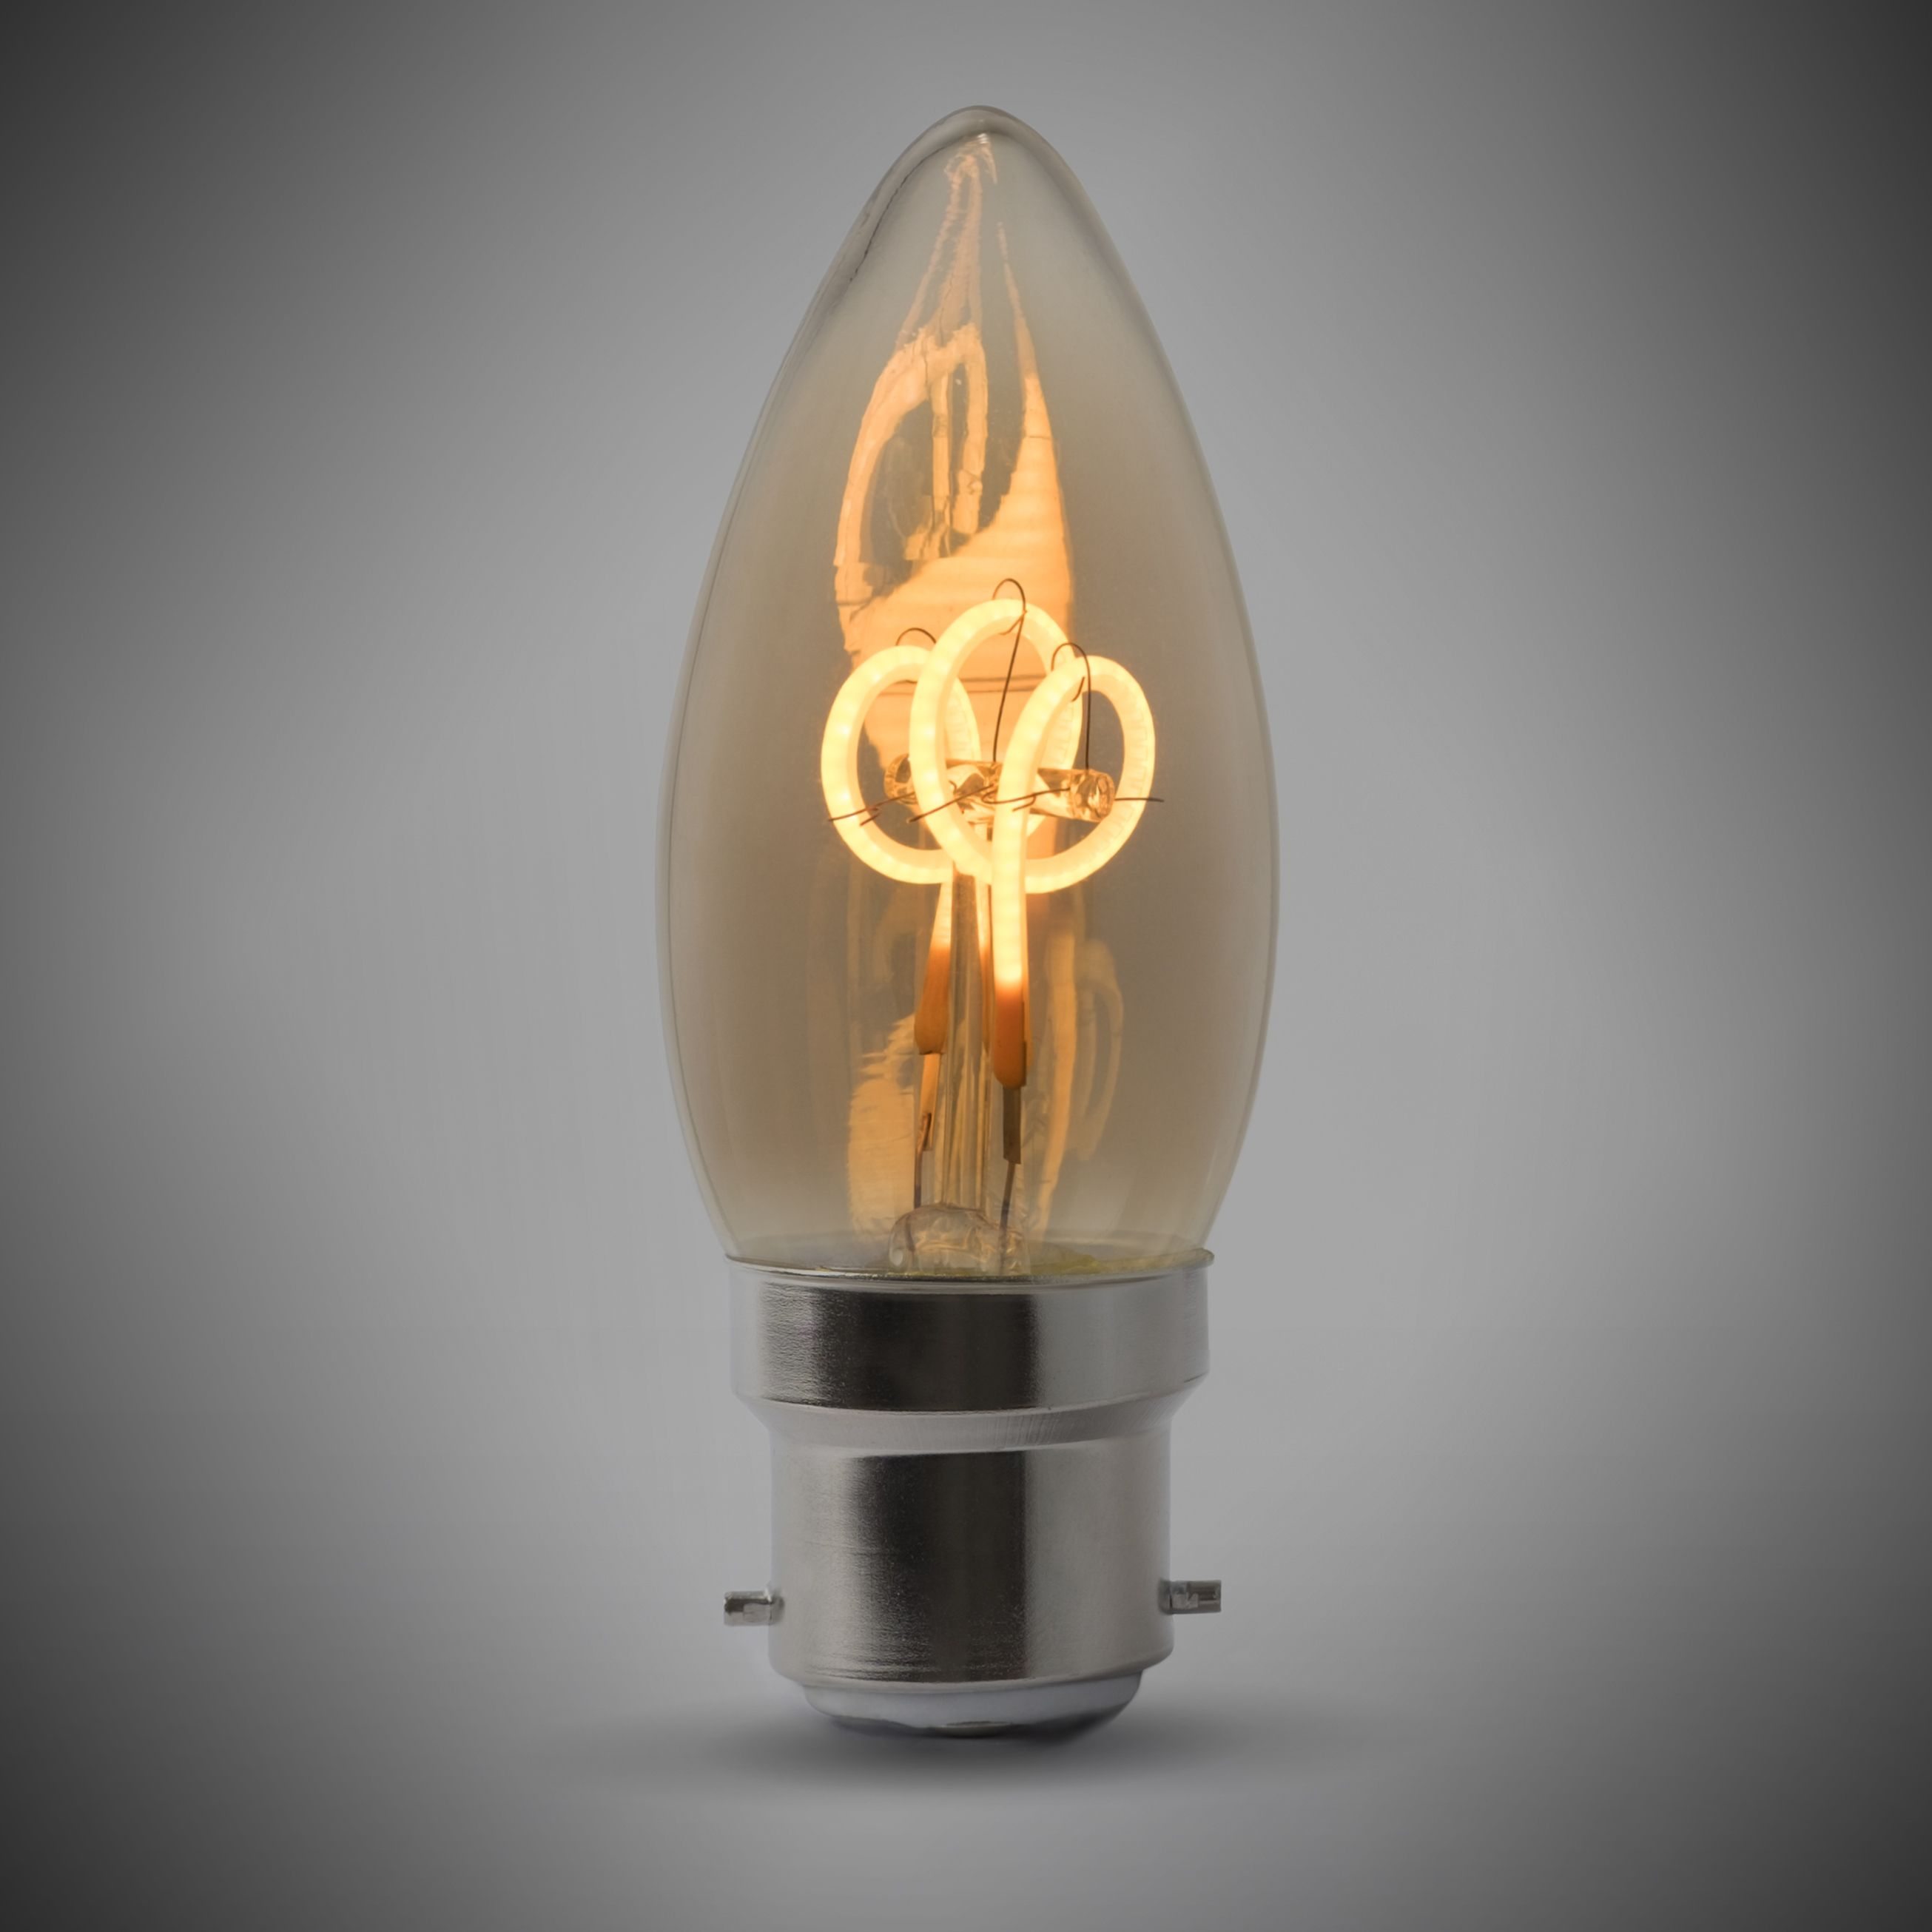 The Soho Lighting Co Light Bulb Led Light Bulb Edison Light Bulbs